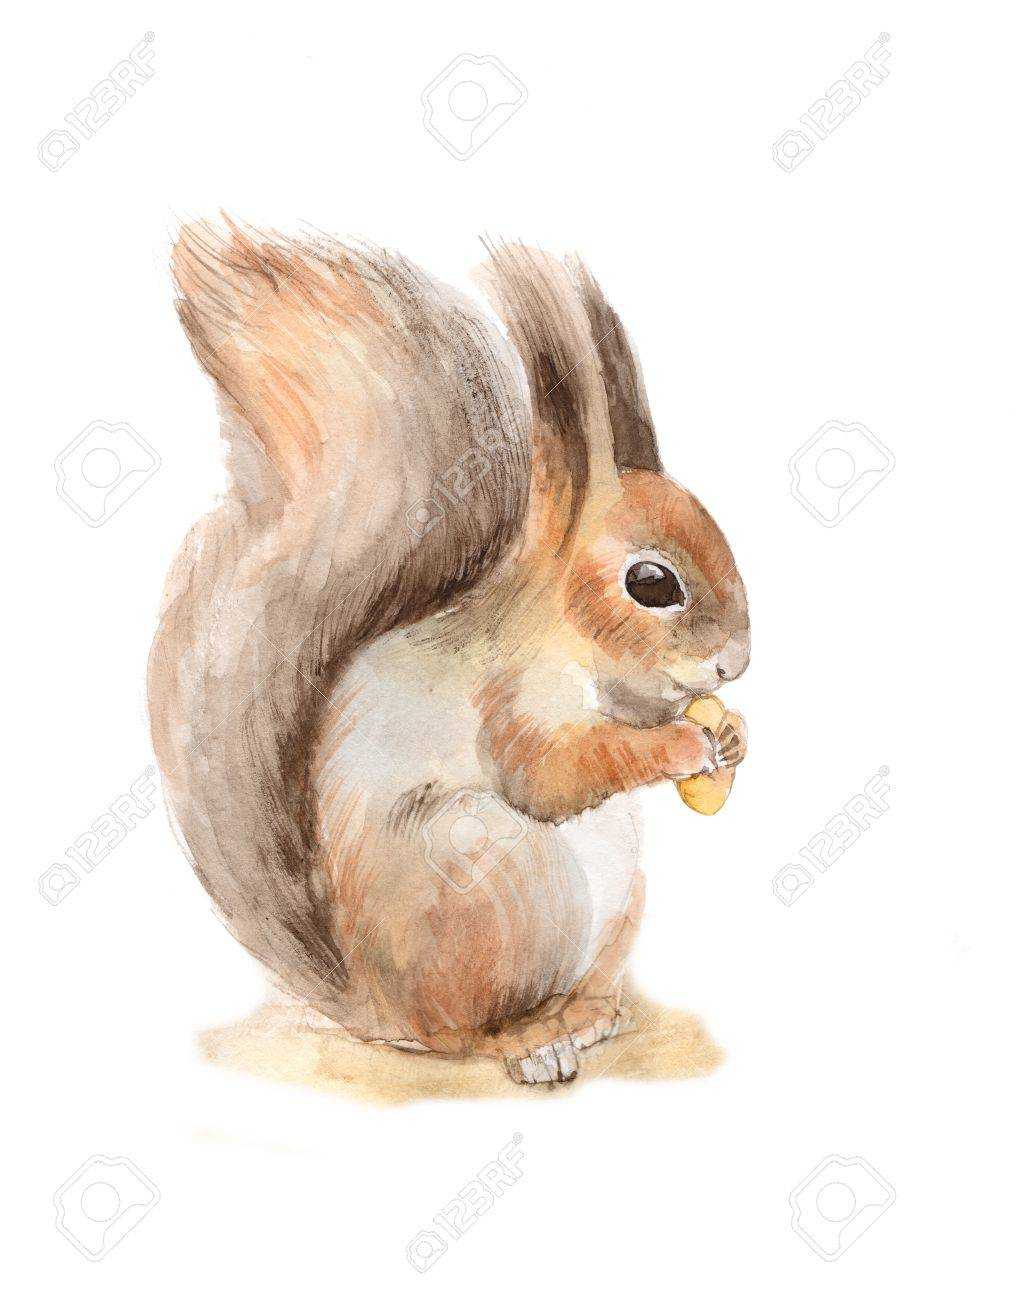 Squirrel with a nut. Watercolor illustration - 50573458